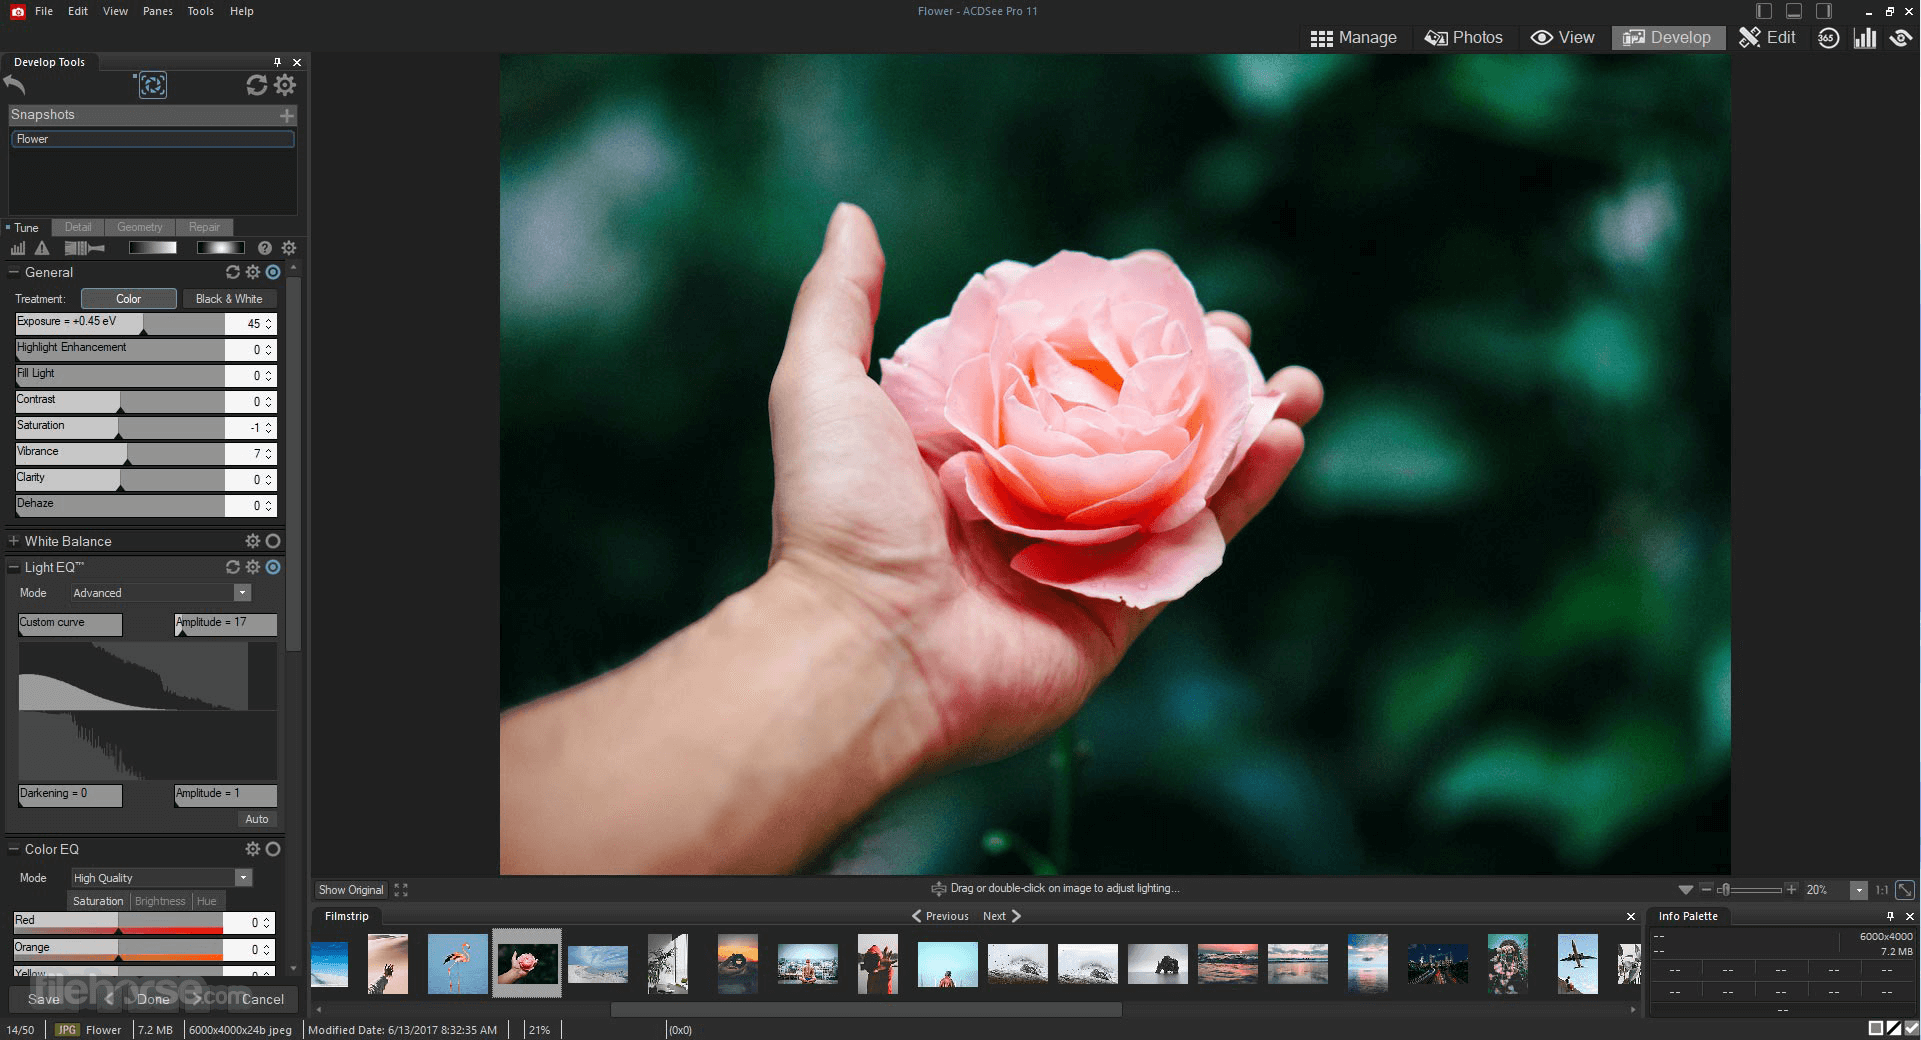 ACDSee Photo Studio Professional 2020 13.0.2 Build 1417 (64-bit) Screenshot 2